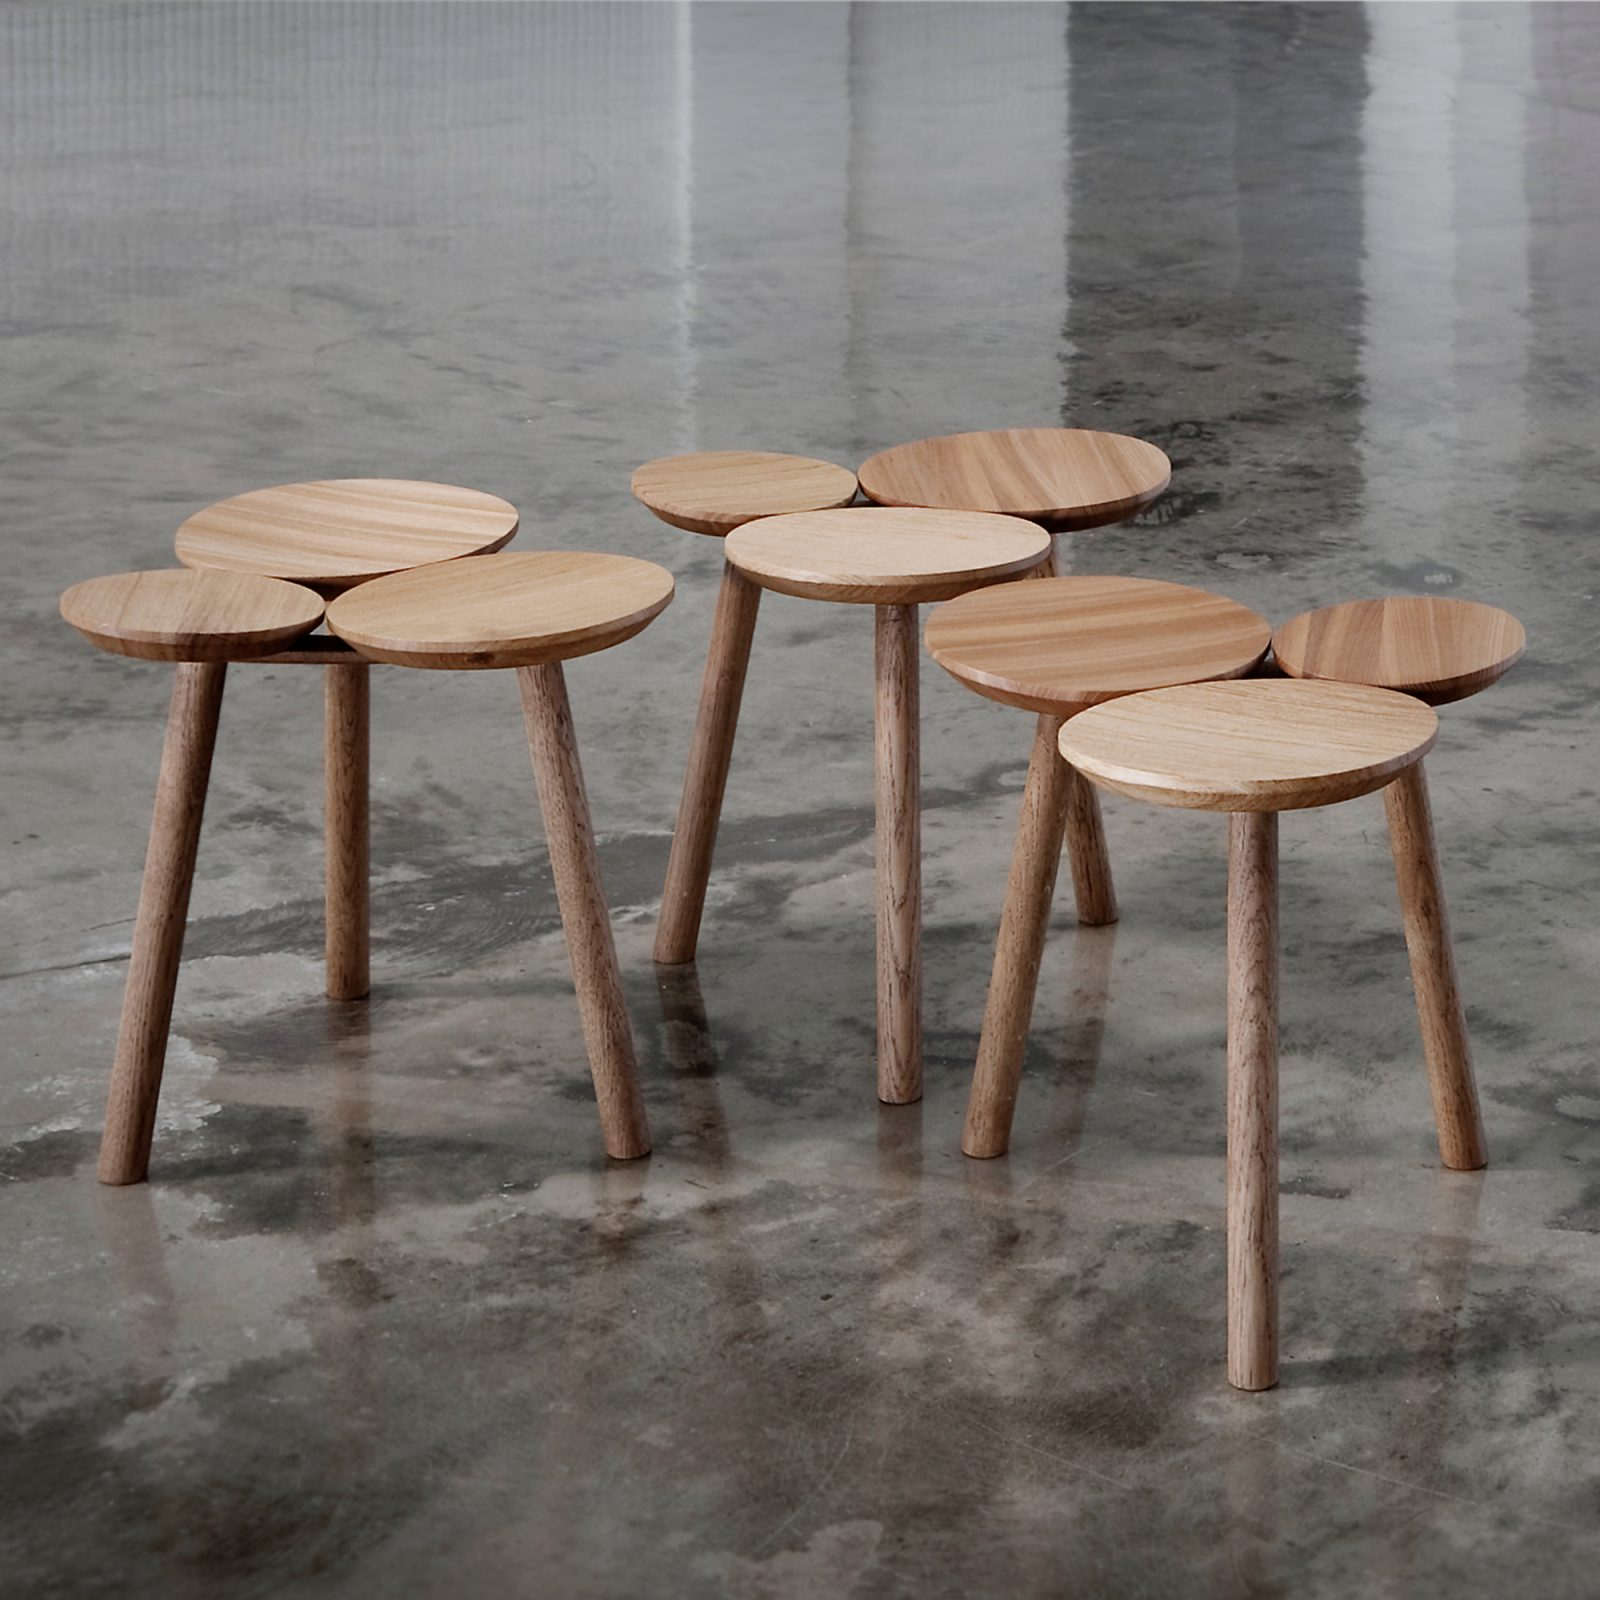 Phenomenal The Beauty Of Individuality The Wooden July Stool Design Caraccident5 Cool Chair Designs And Ideas Caraccident5Info